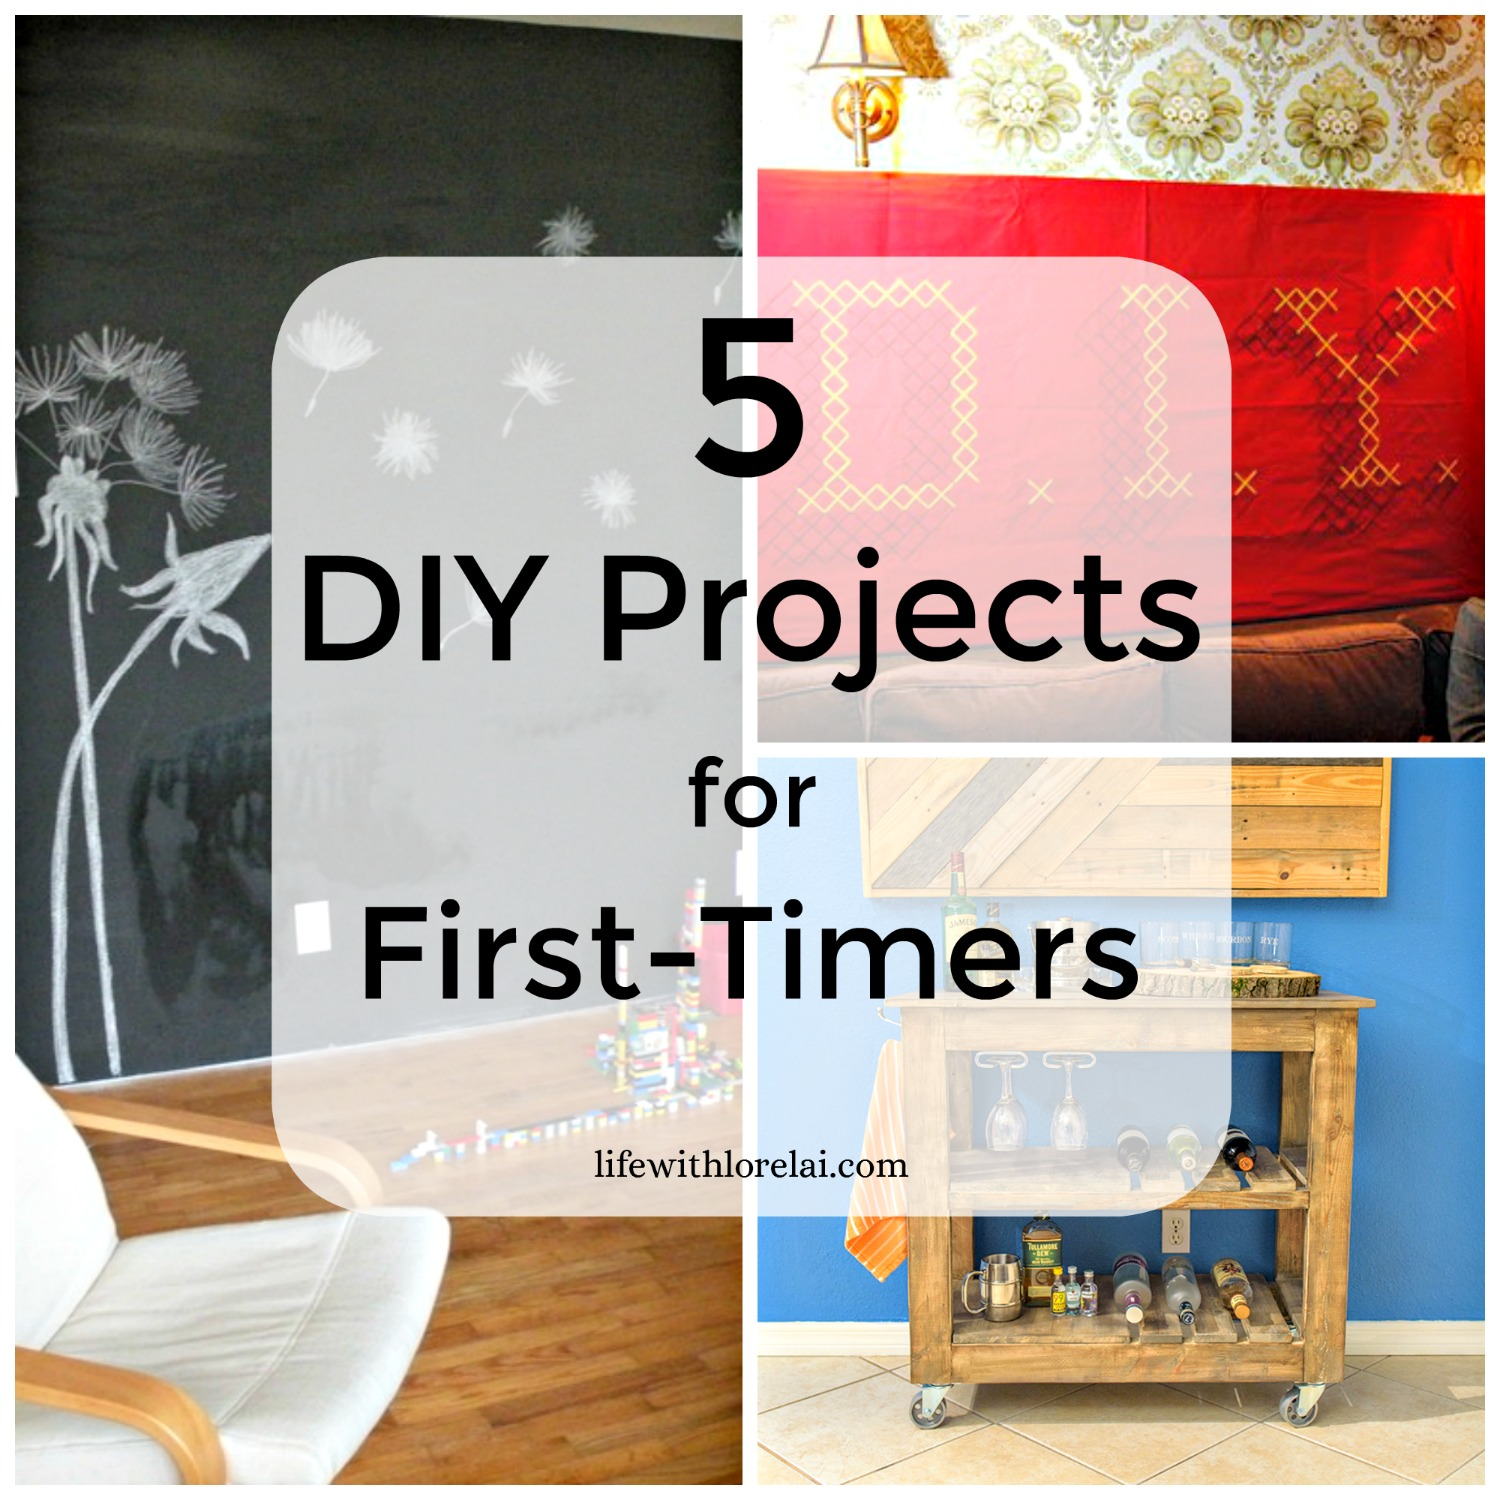 5 DIY Projects For First-Timers - DIY projects are fun & rewarding. Check out these ideas for beginners. #DIY #Projects #BeCreative #Crafters #DoItYourself